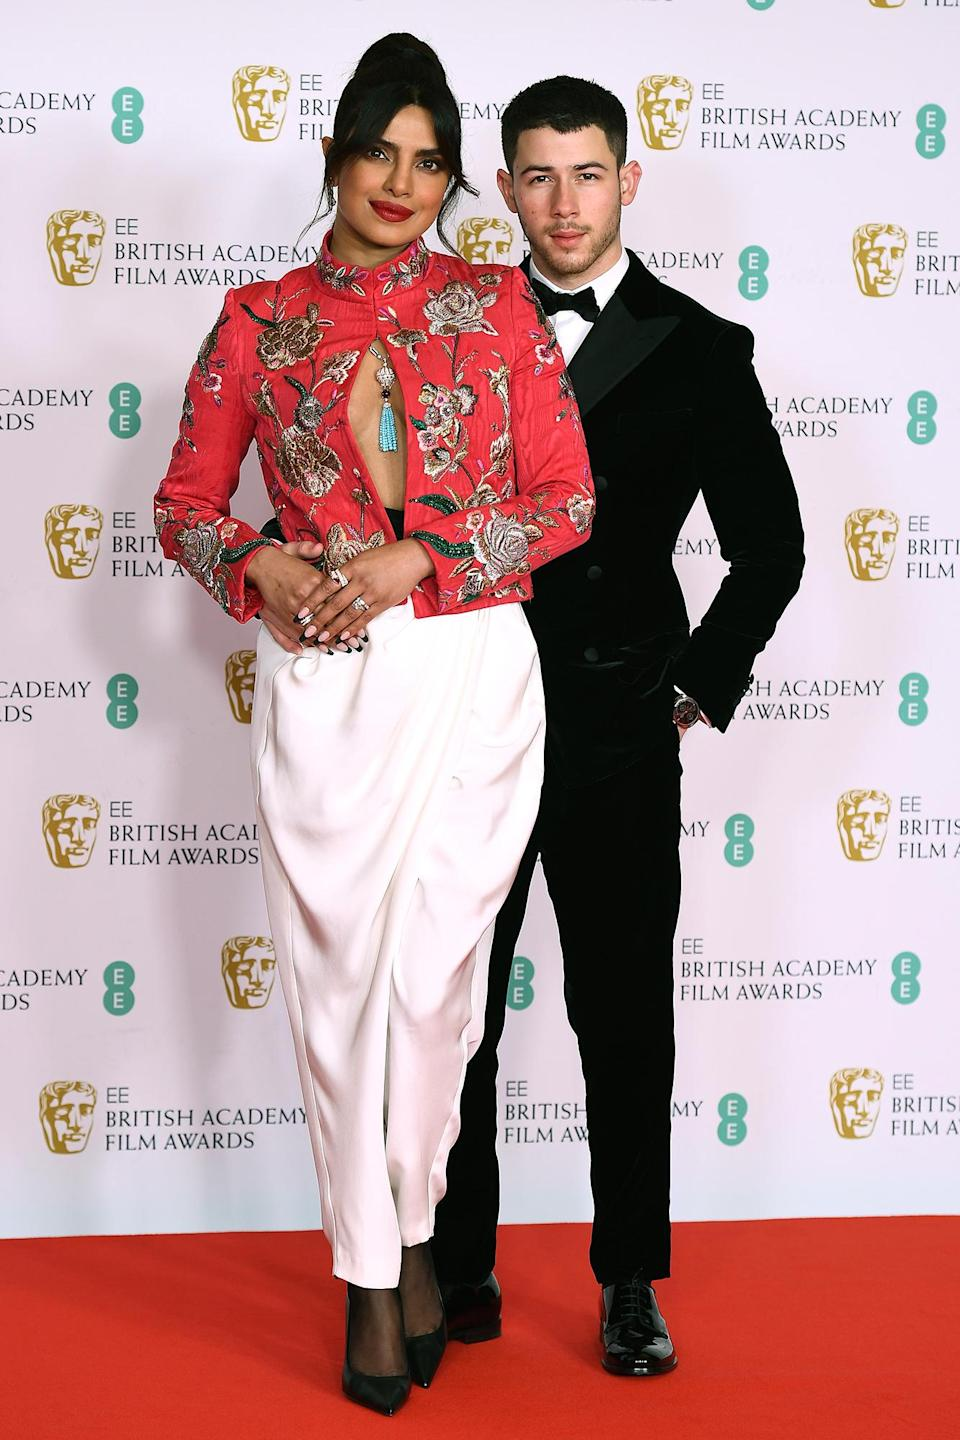 <p>Priyanka Chopra Jonas and Nick Jonas attended the British Academy Film Awards at the Royal Albert Hall in London.</p>